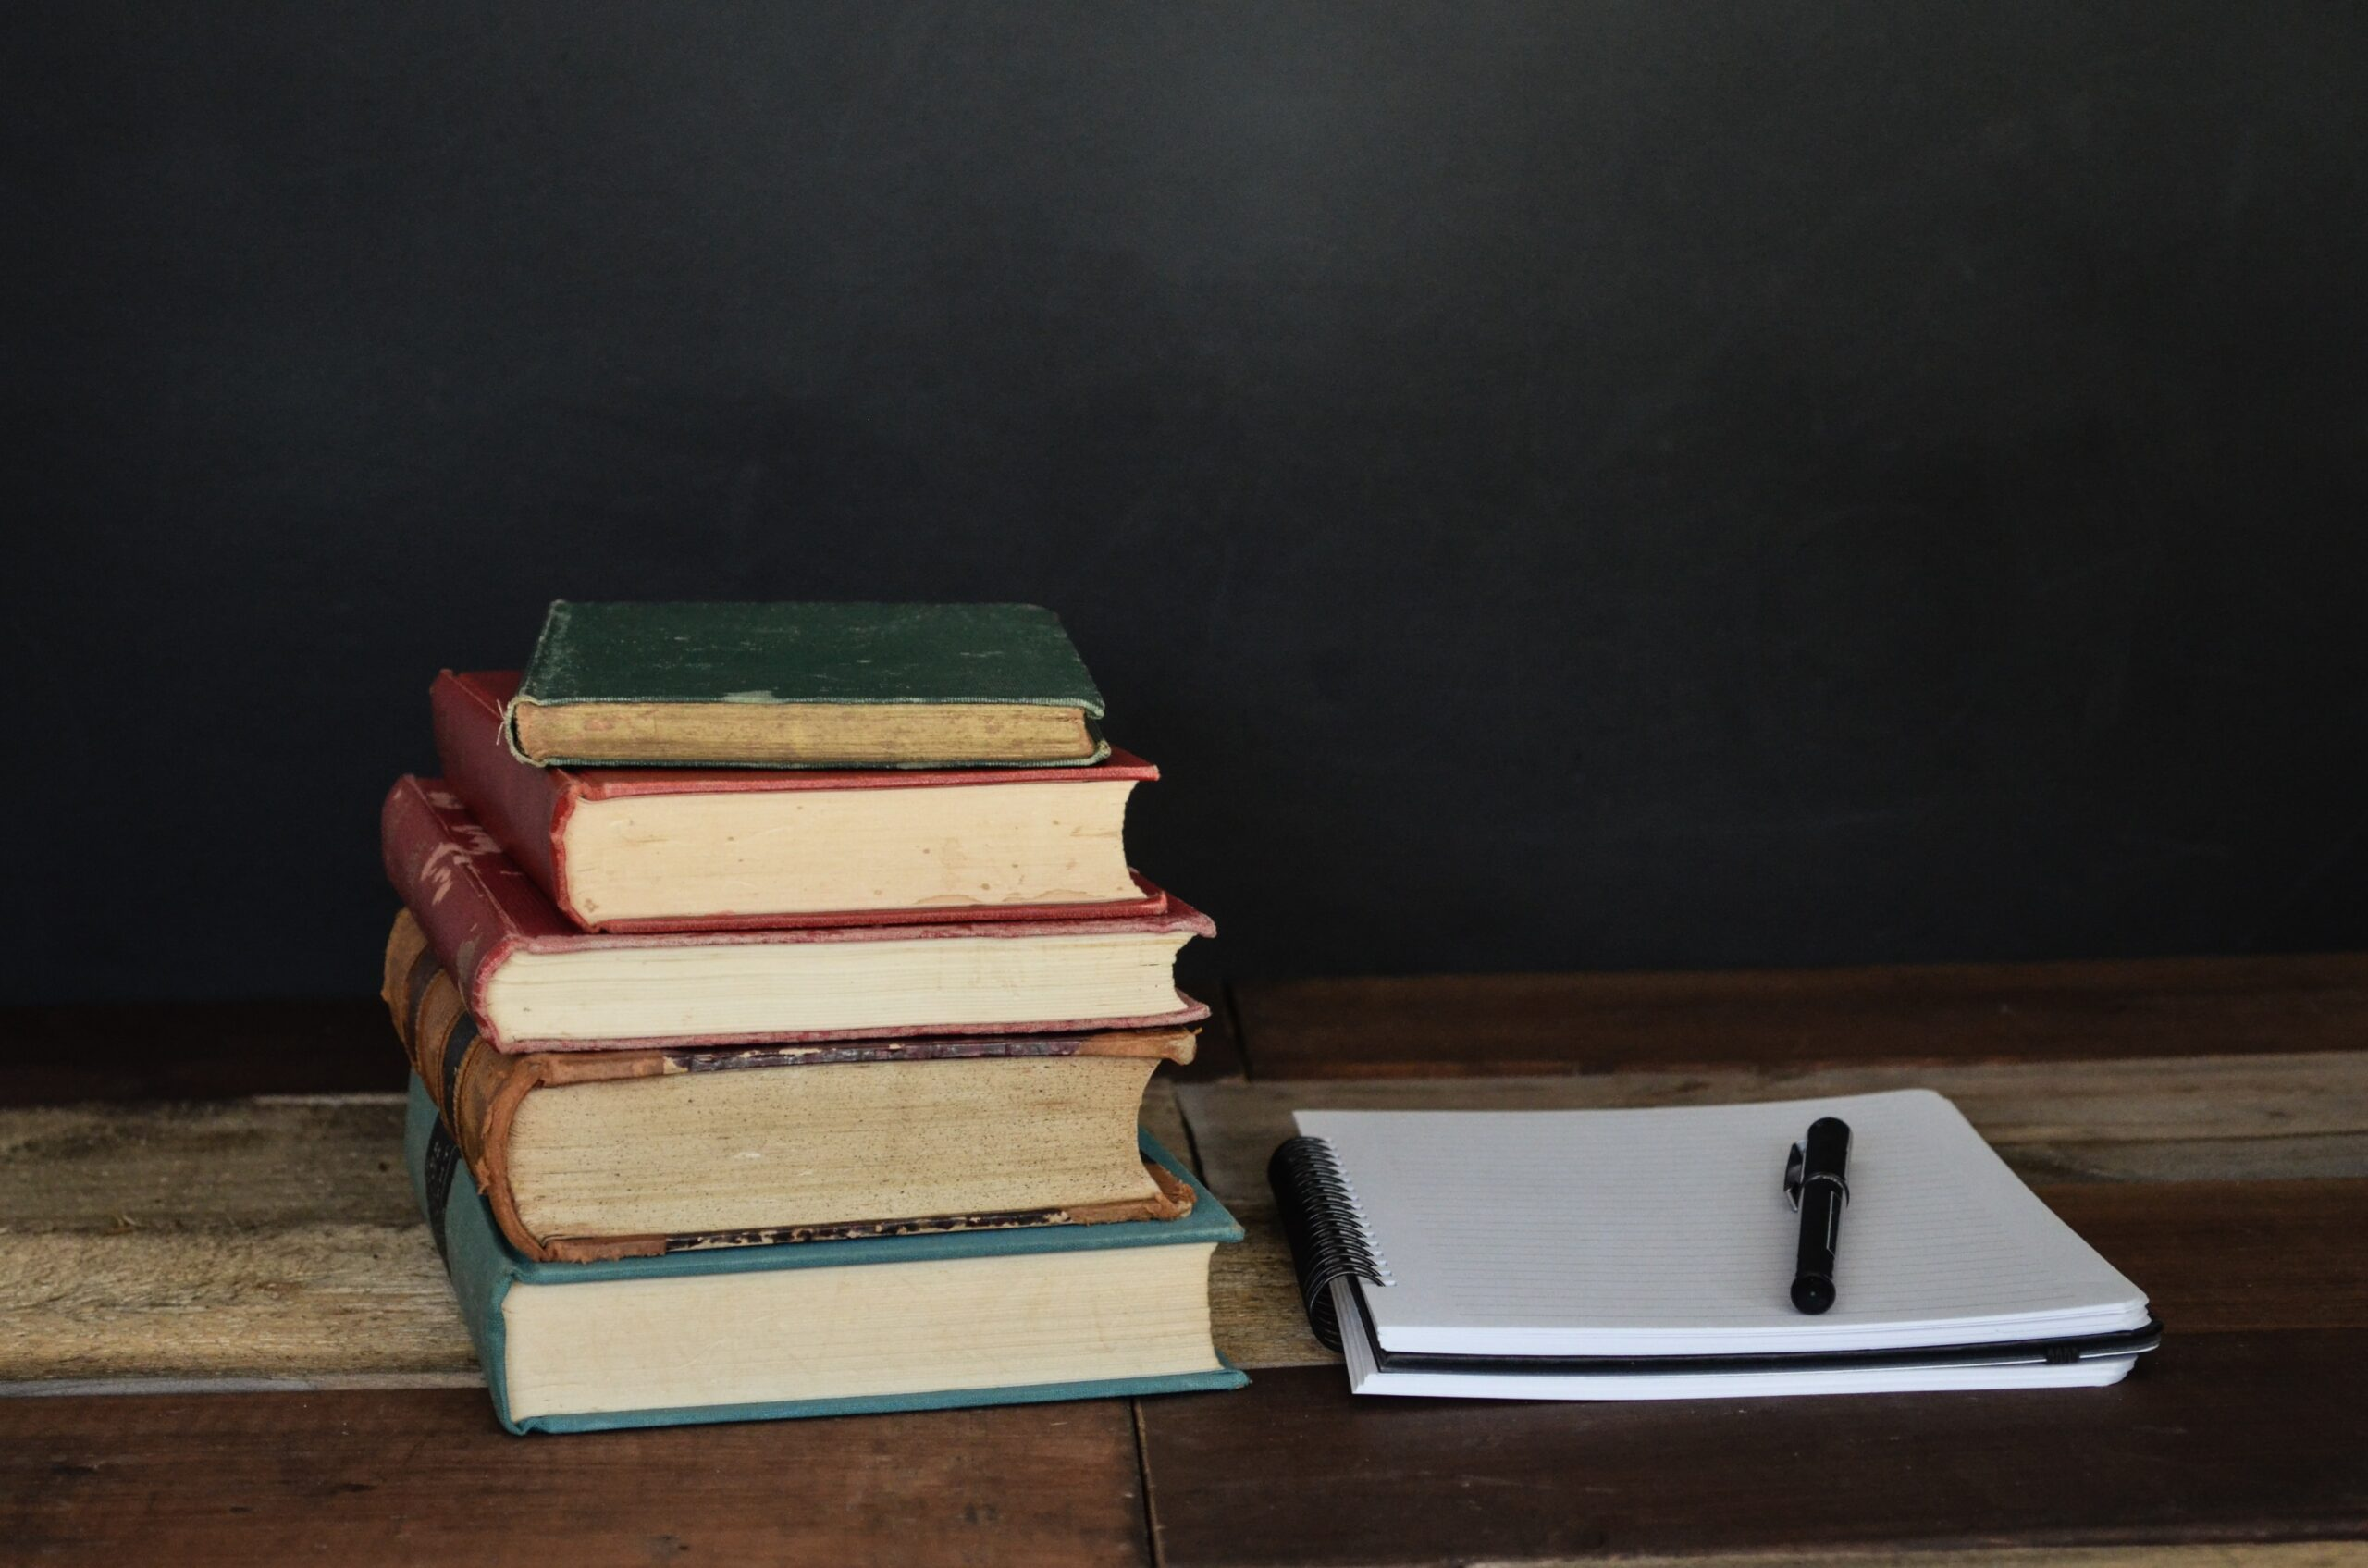 Stack of Books next to a notepad and pen